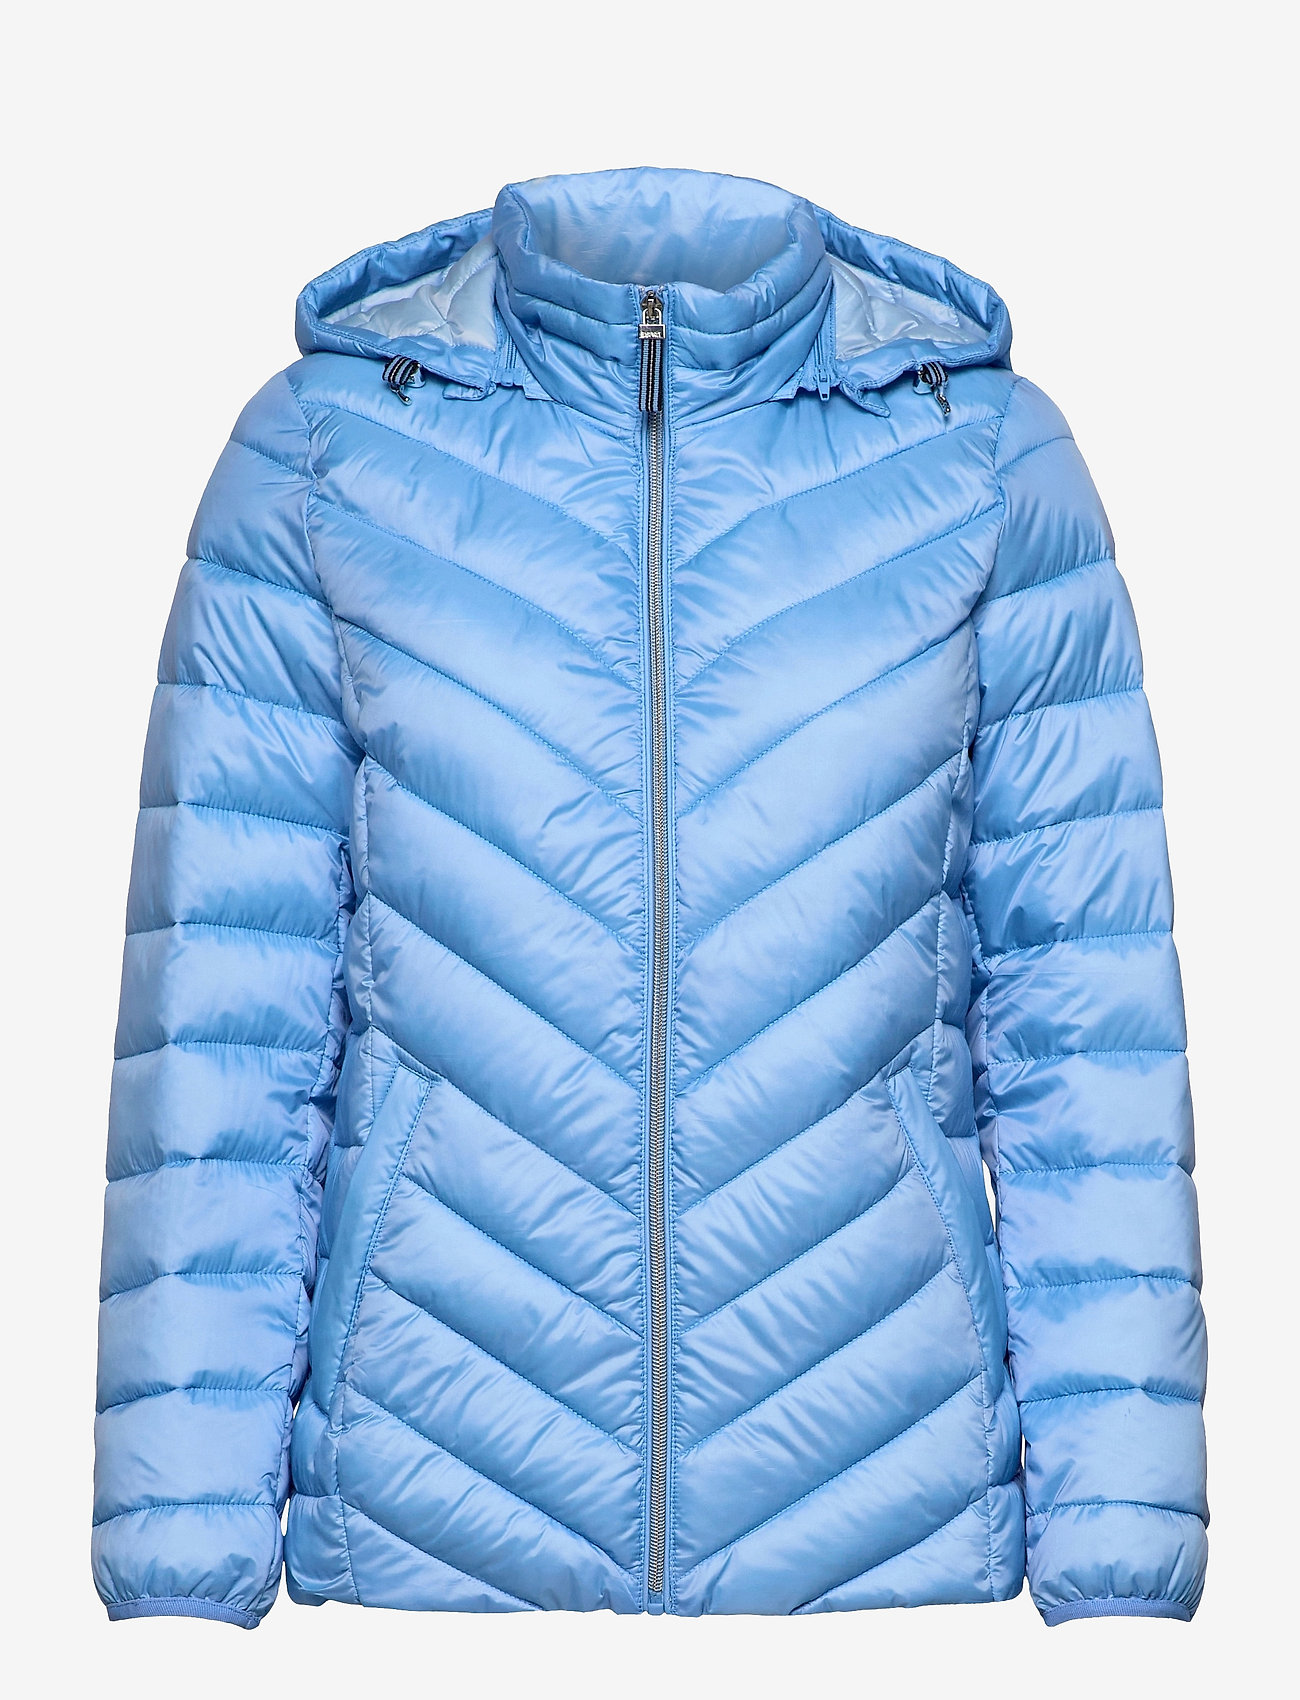 Esprit Casual - Jackets outdoor woven - doudounes - light blue - 1